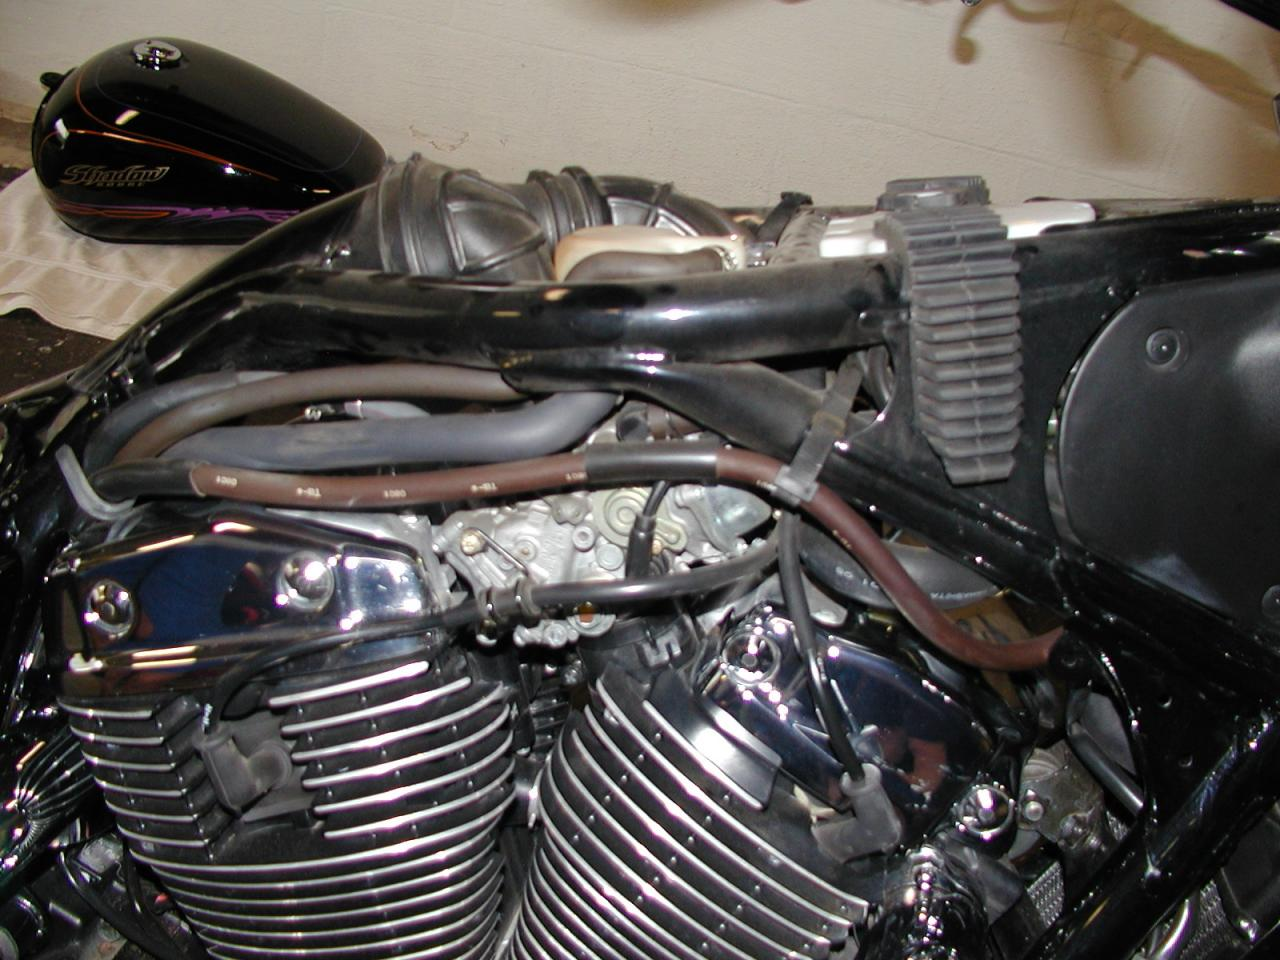 honda shadow 1100 carburetor jetting